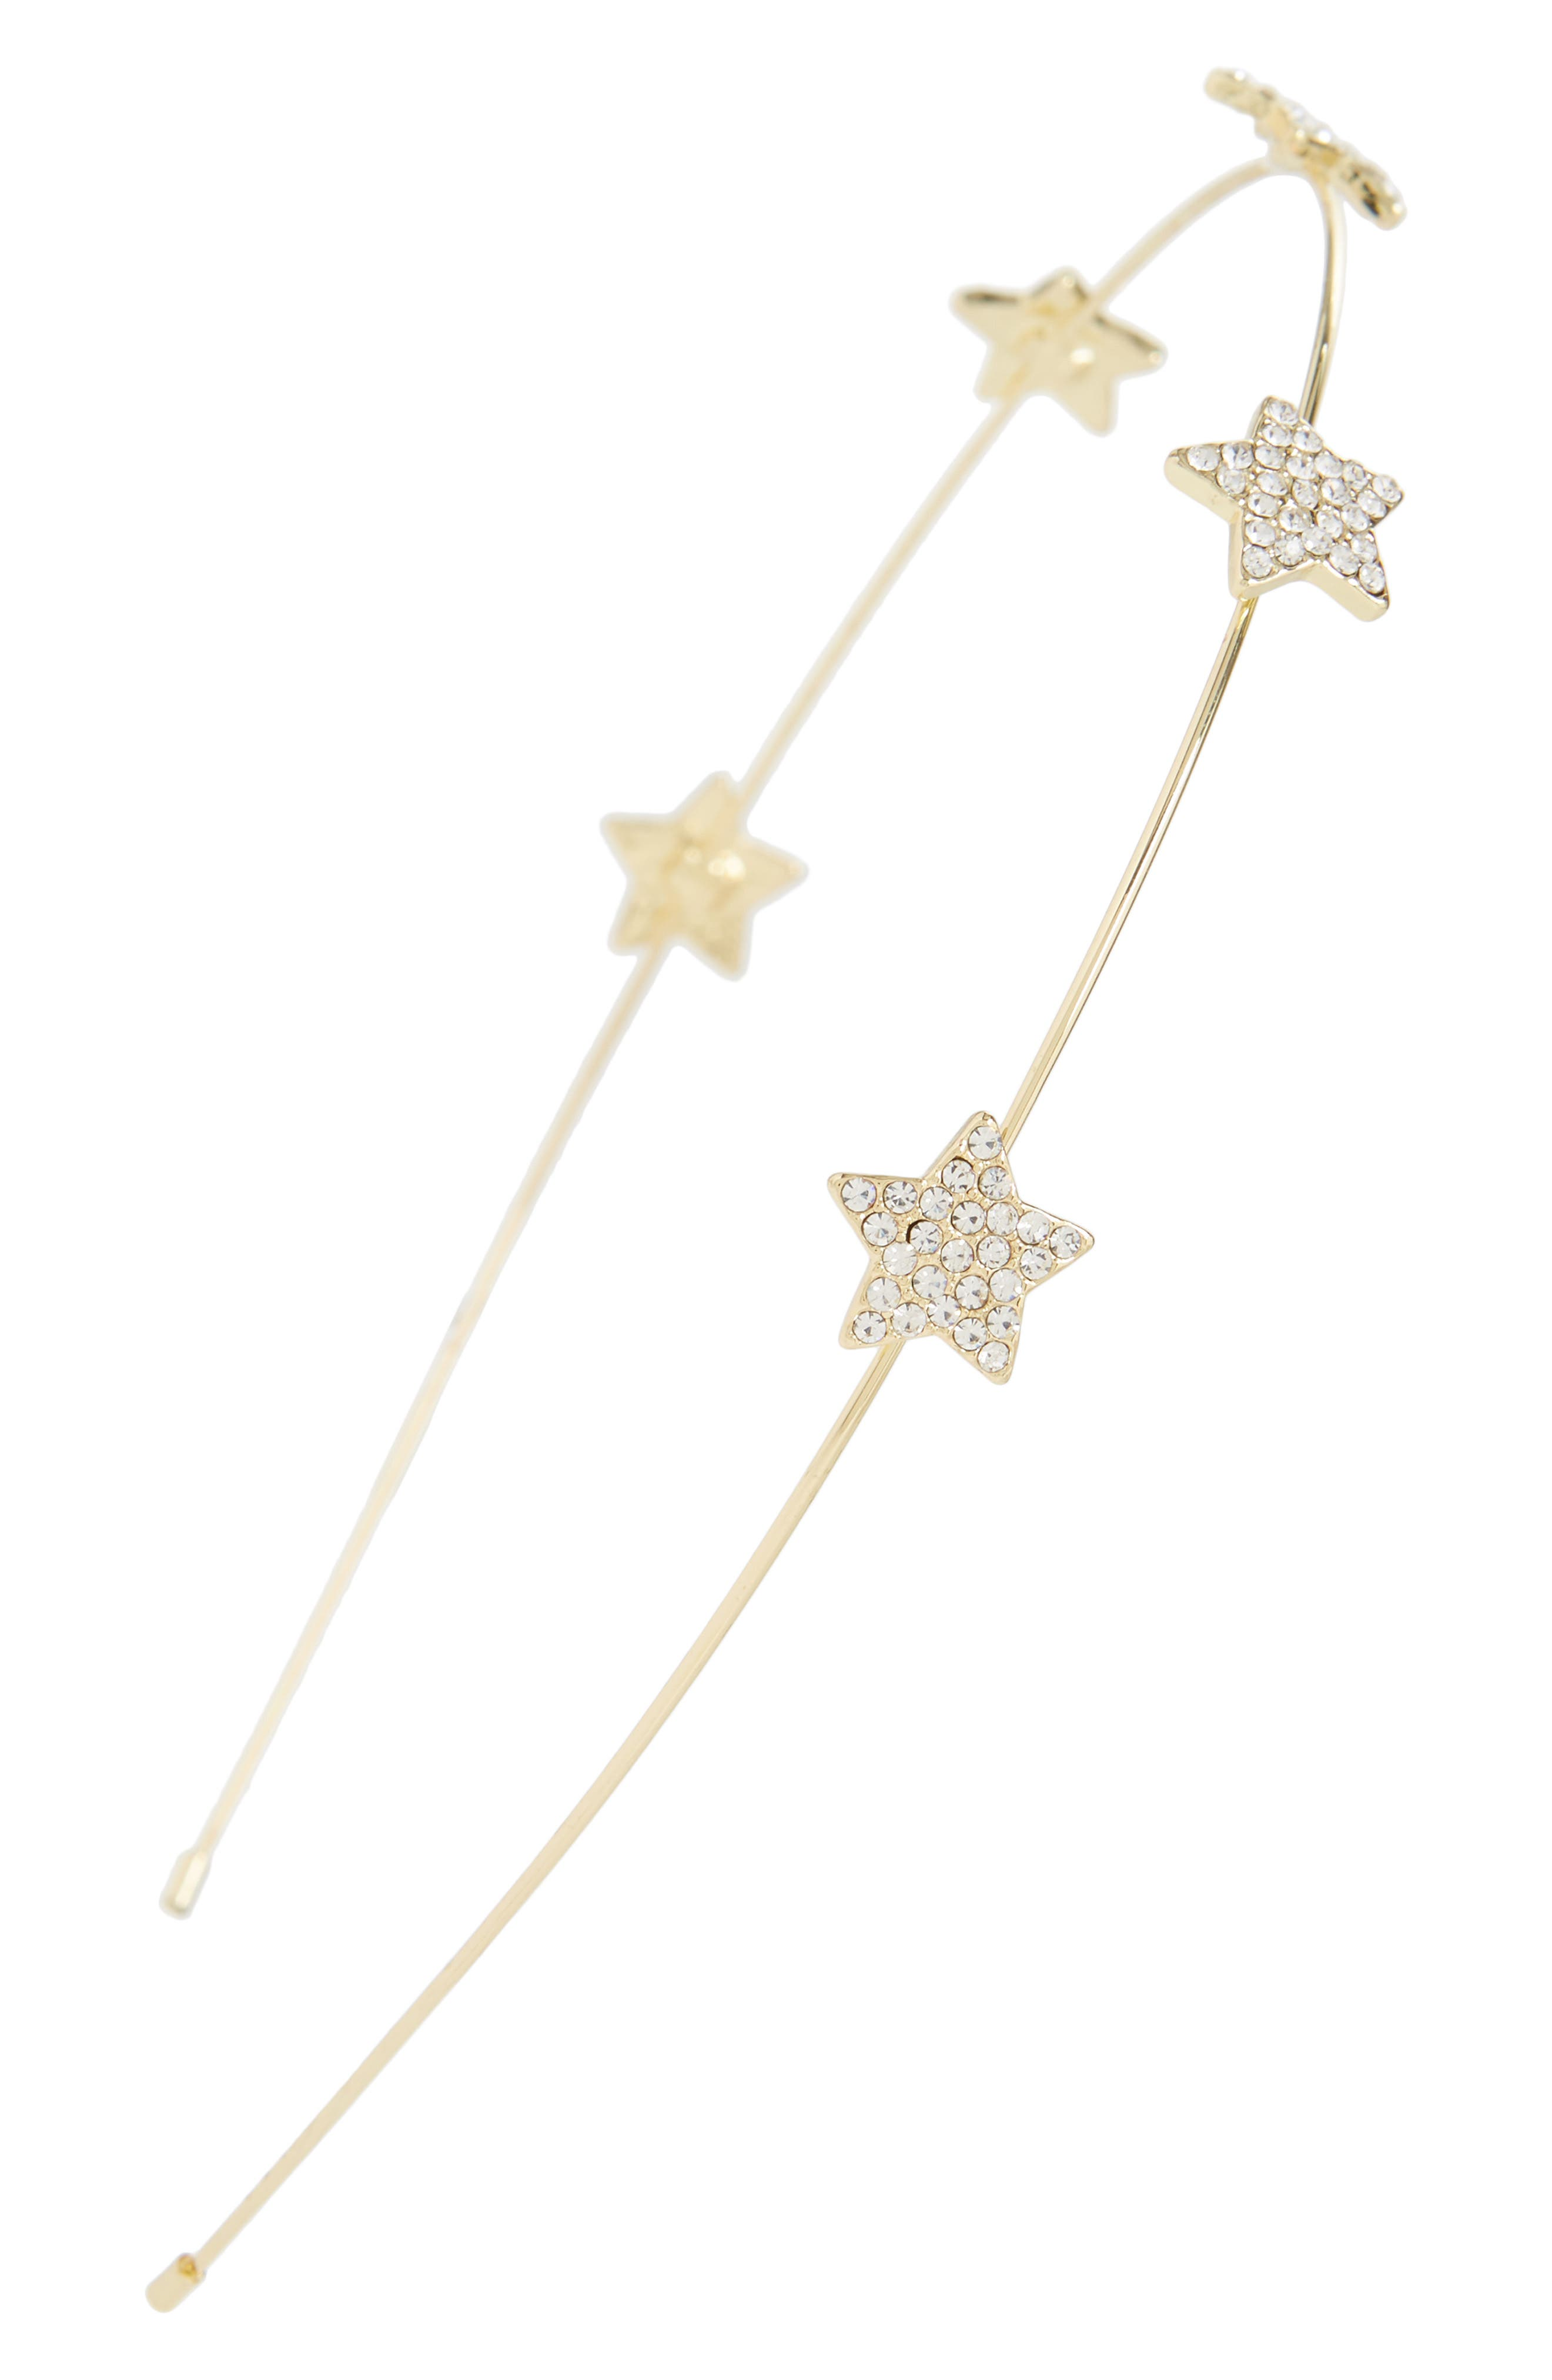 Crystal Star Headband,                             Main thumbnail 1, color,                             710